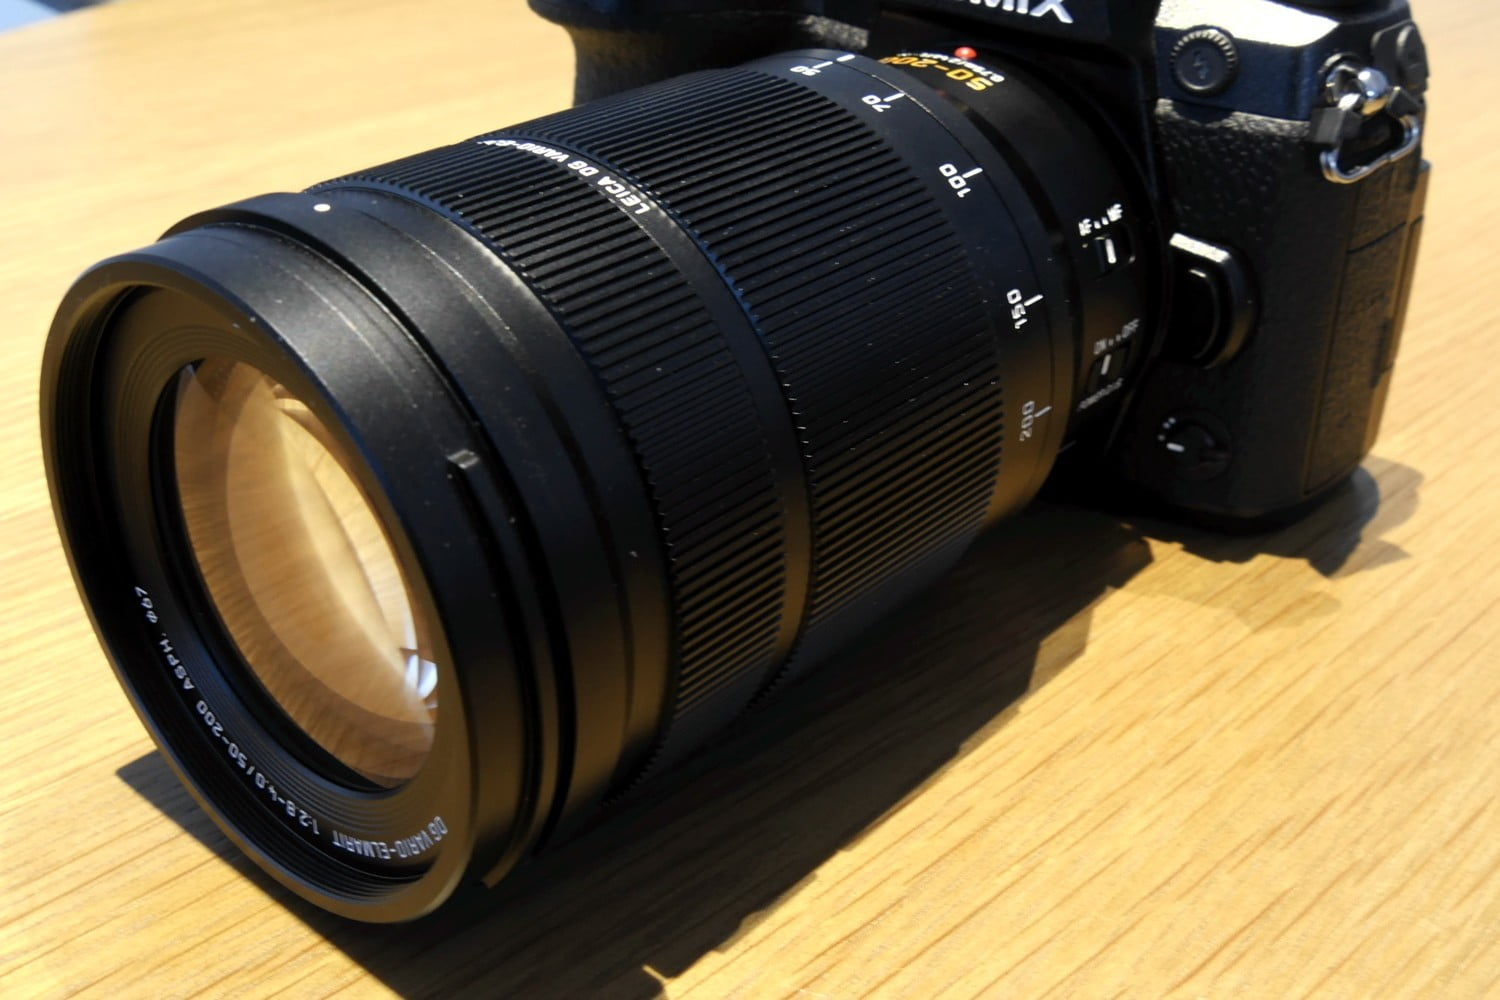 Panasonic's Latest Lens Delivers 200mm of Bright, Stabilized